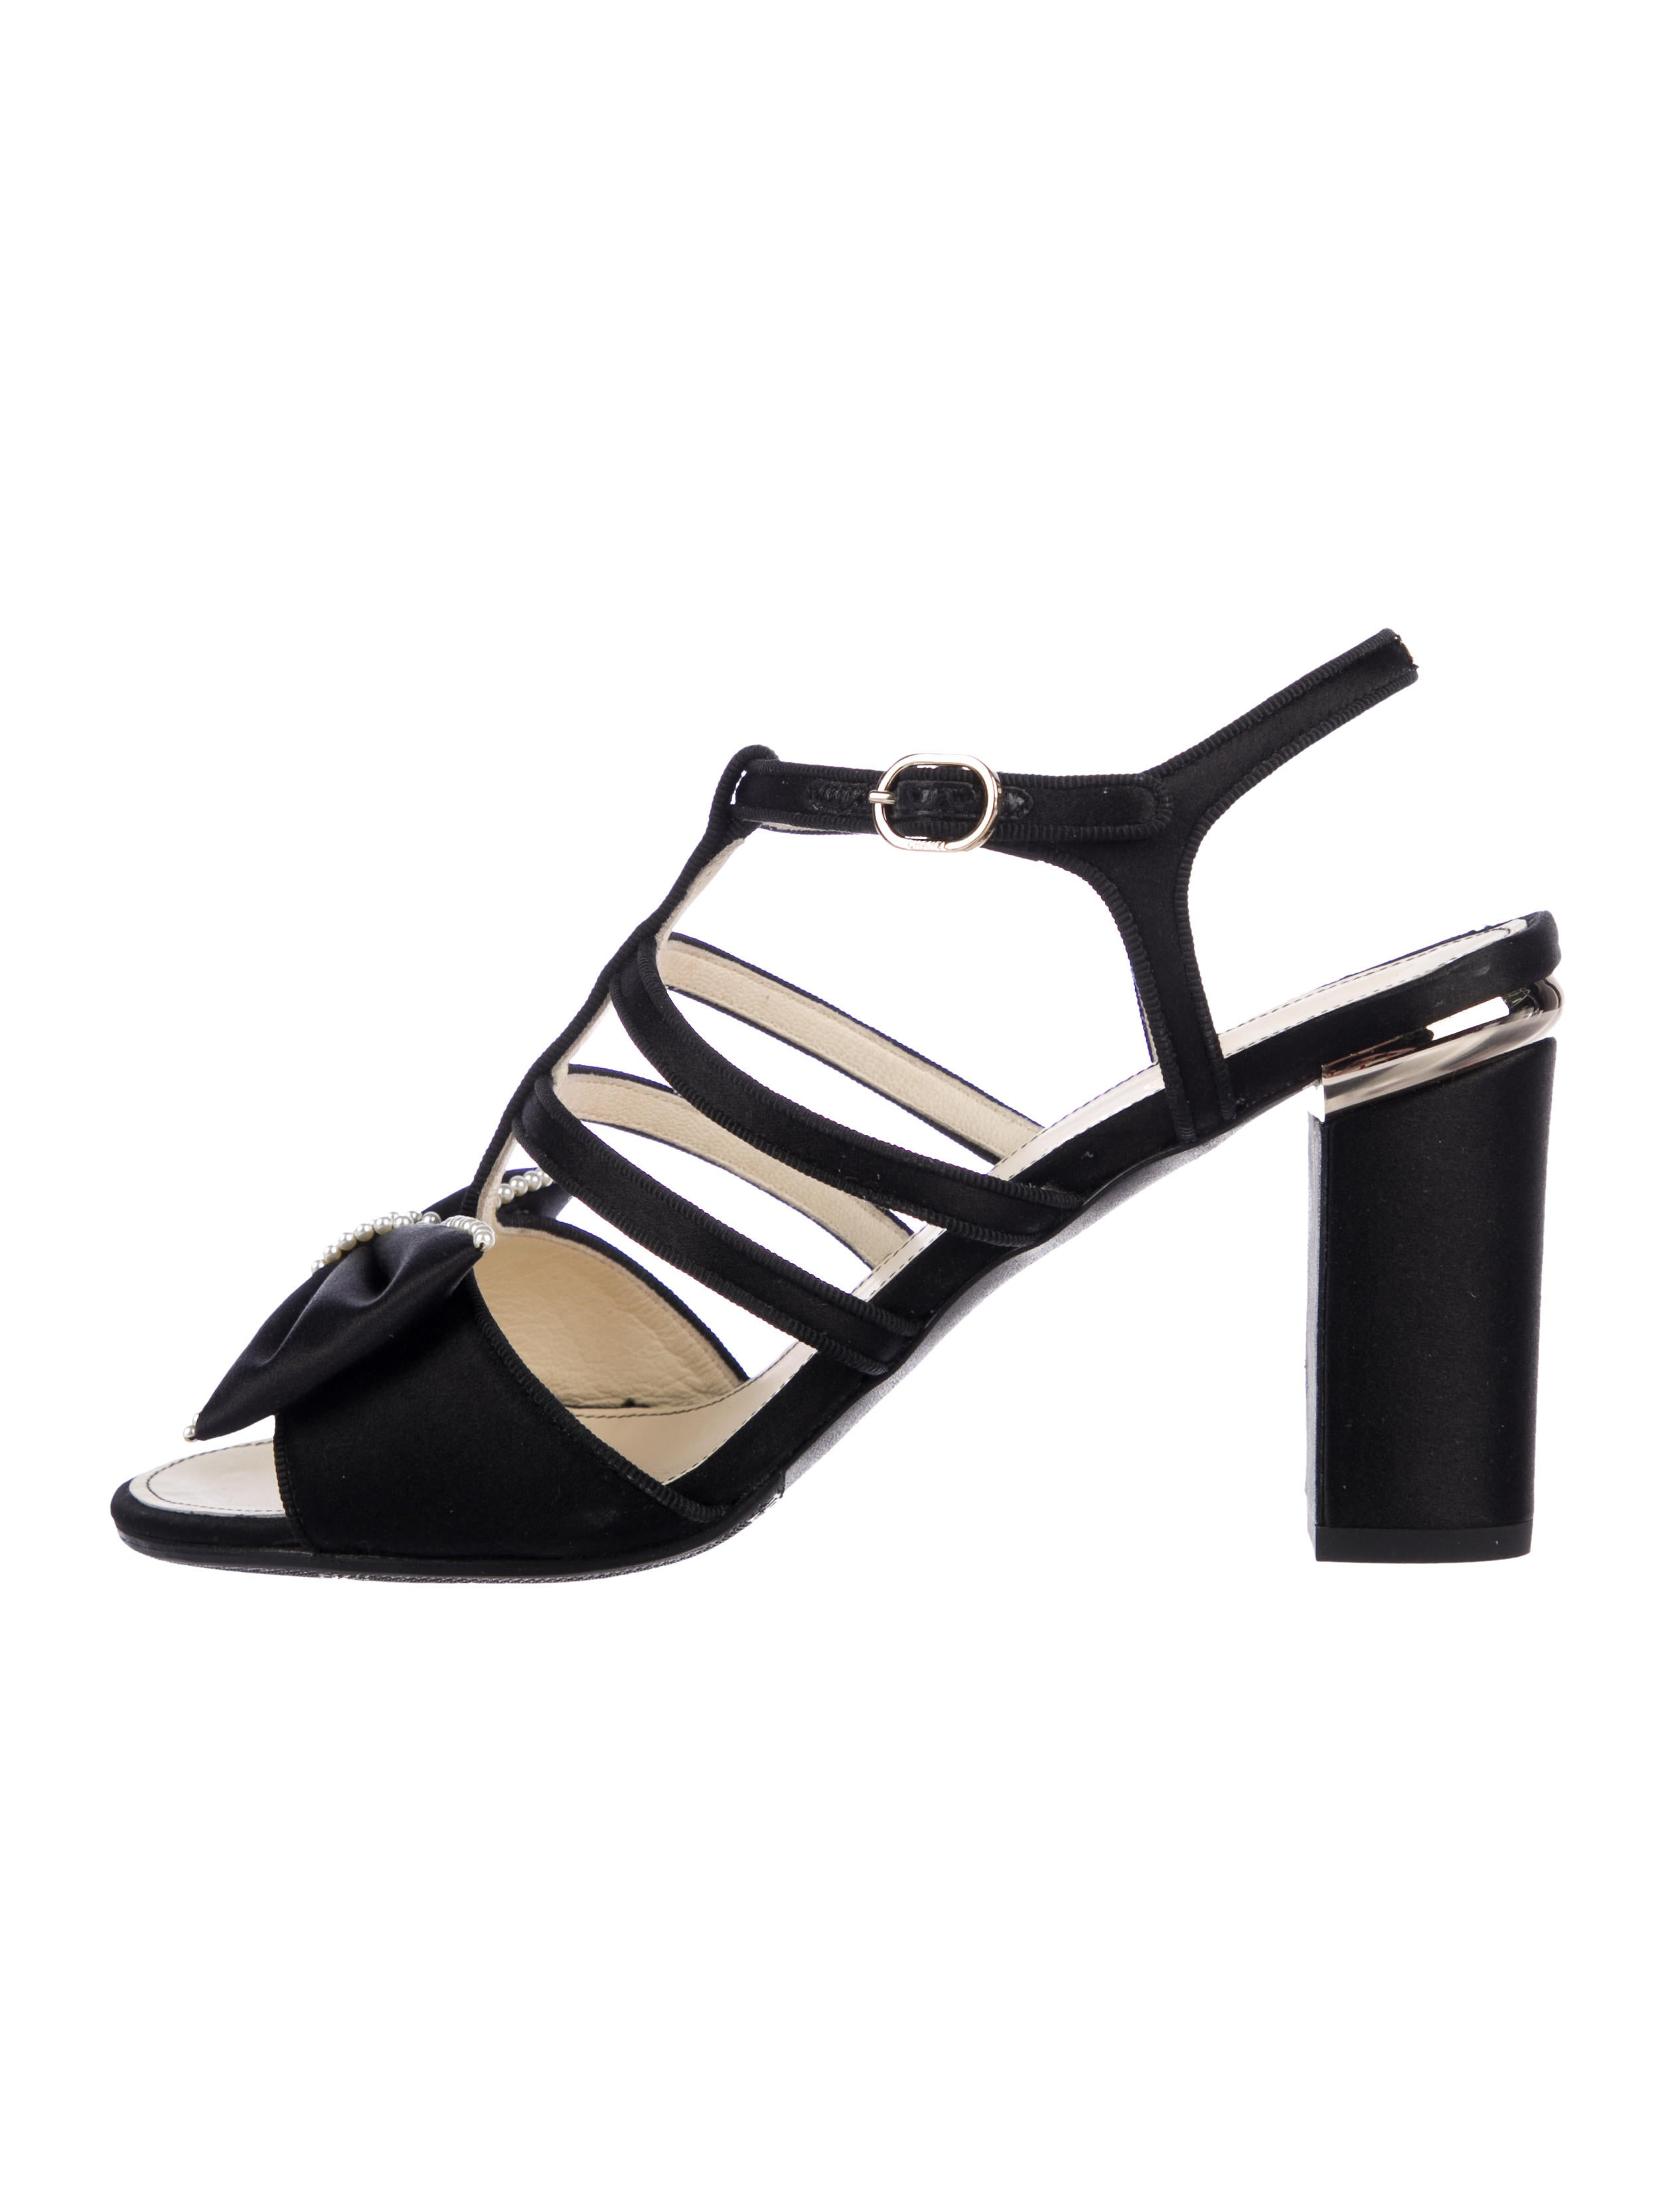 77e6c420dd5 Chanel 2016 Embellished Bow Sandals - Shoes - CHA294368